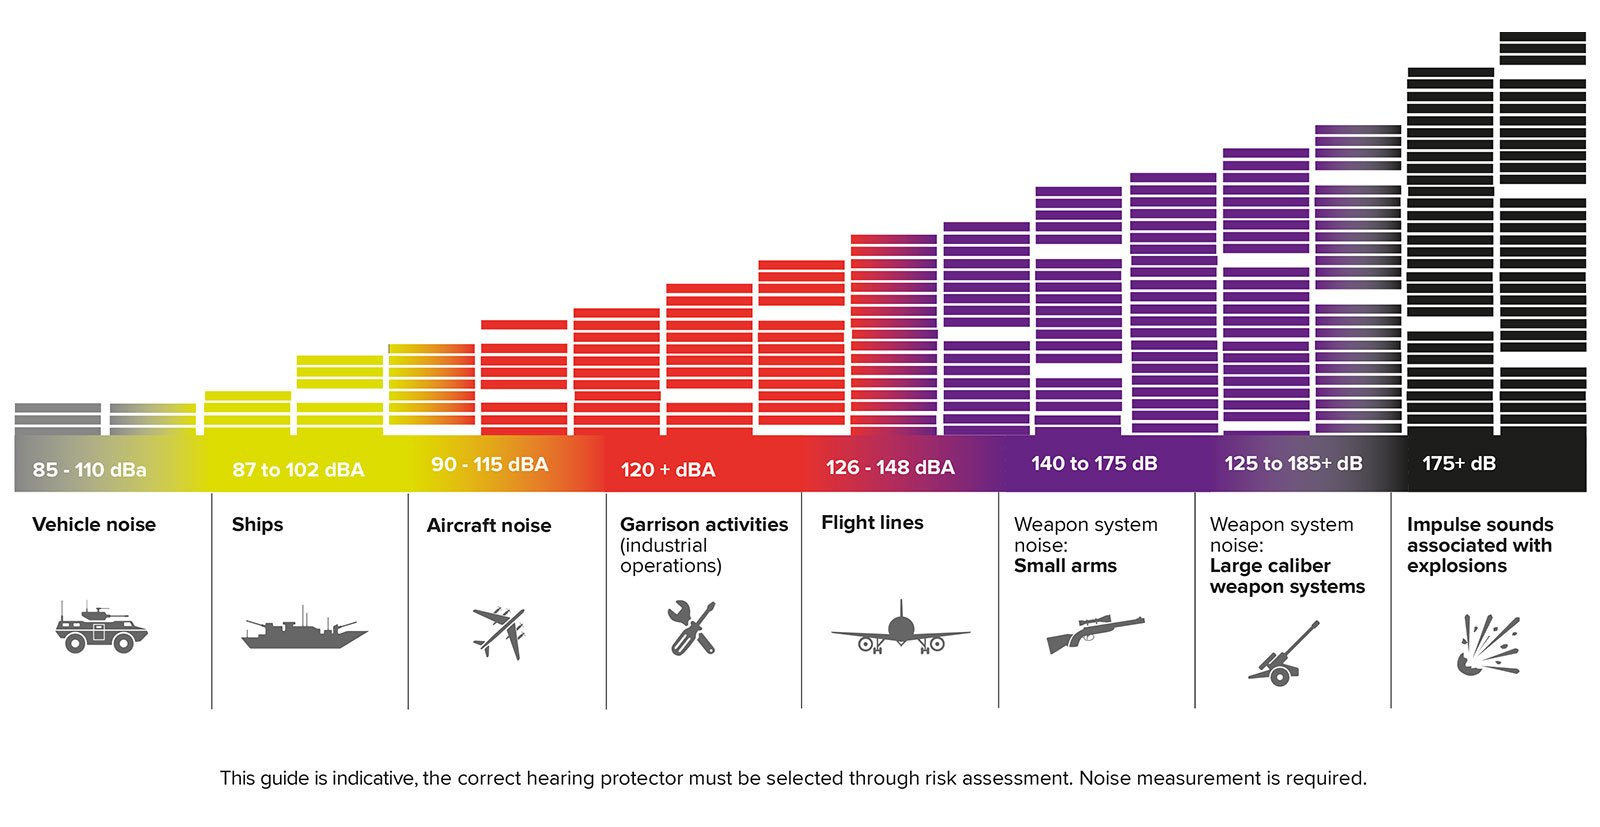 Sources of impulse noise in military environment